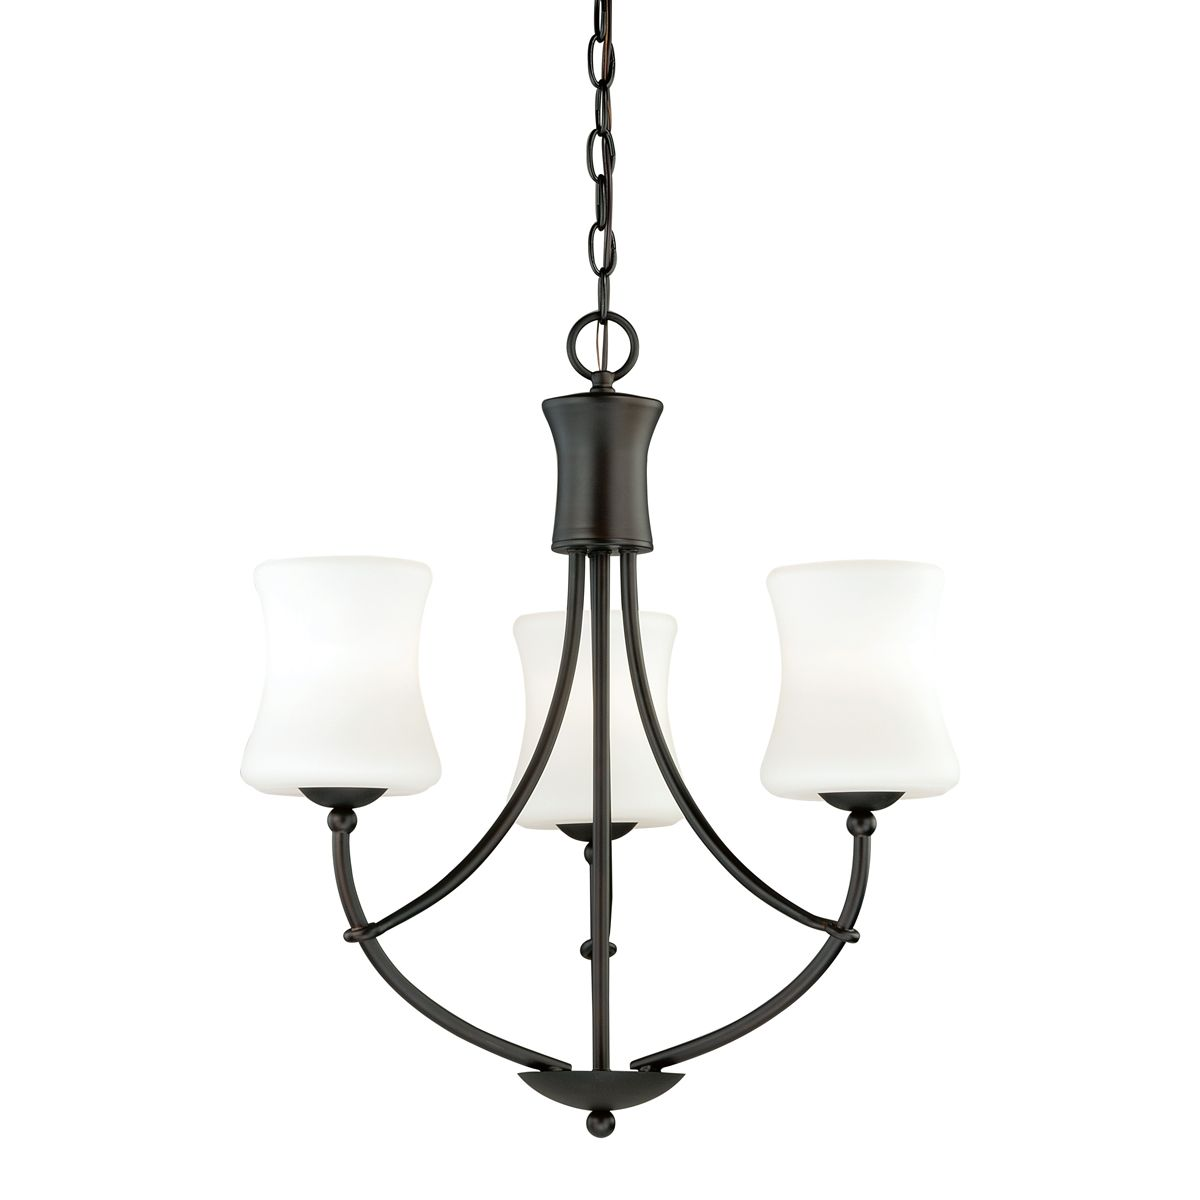 Ellis 3 Light Chandelier